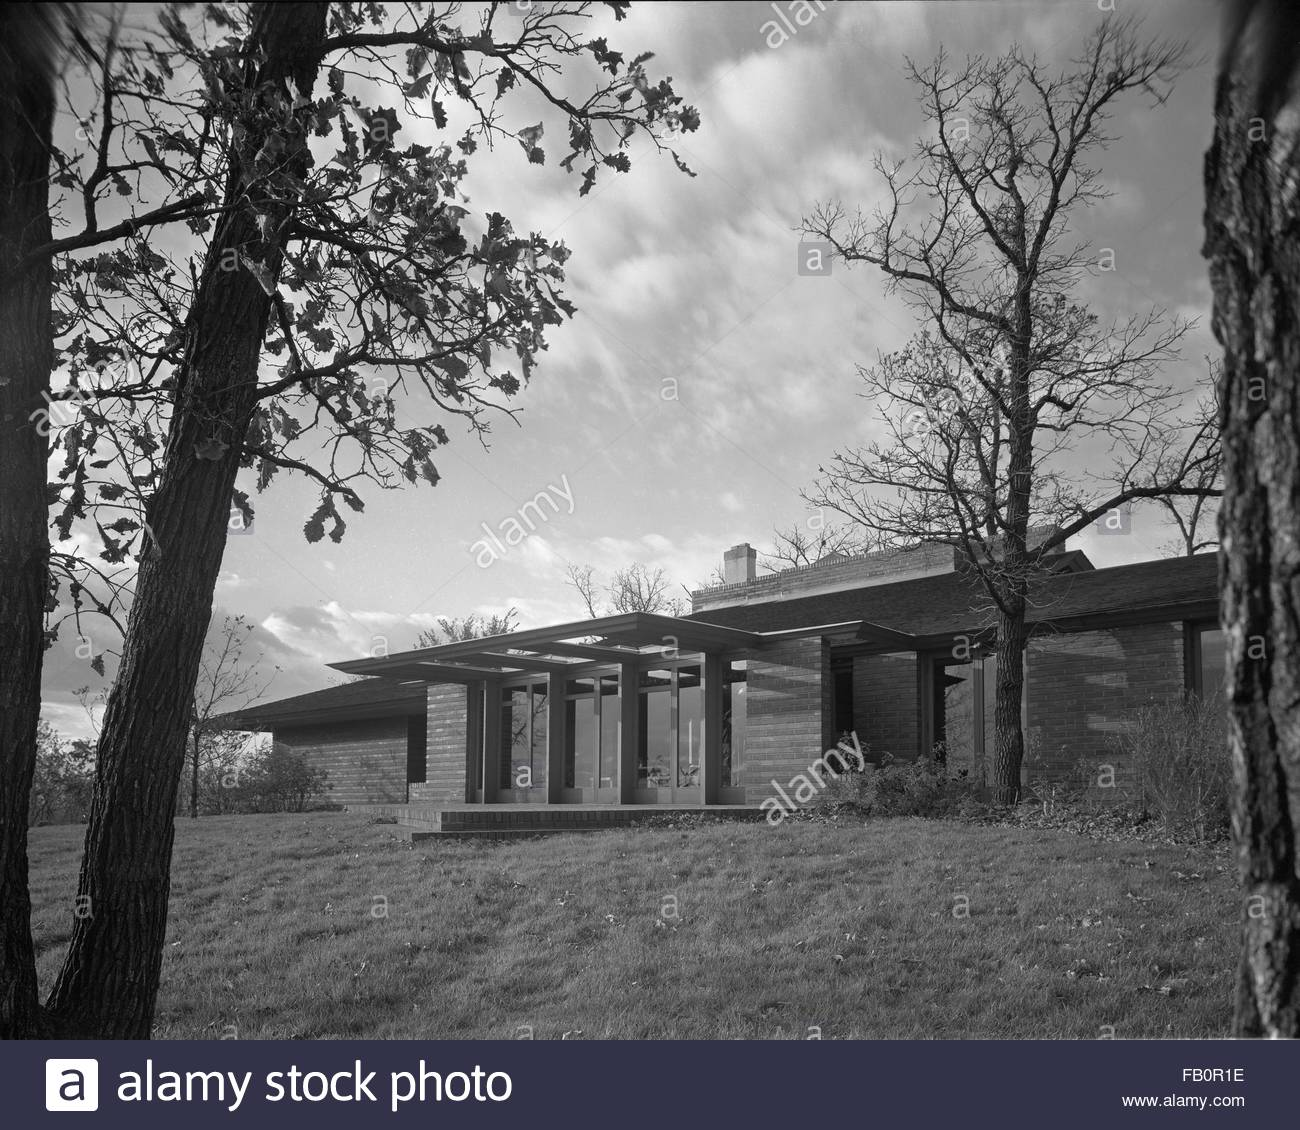 Malcom E. Willey residence in Minneapolis (Minn.), 1937 Dec. Exterior of home with trees framing the image. - Stock Image